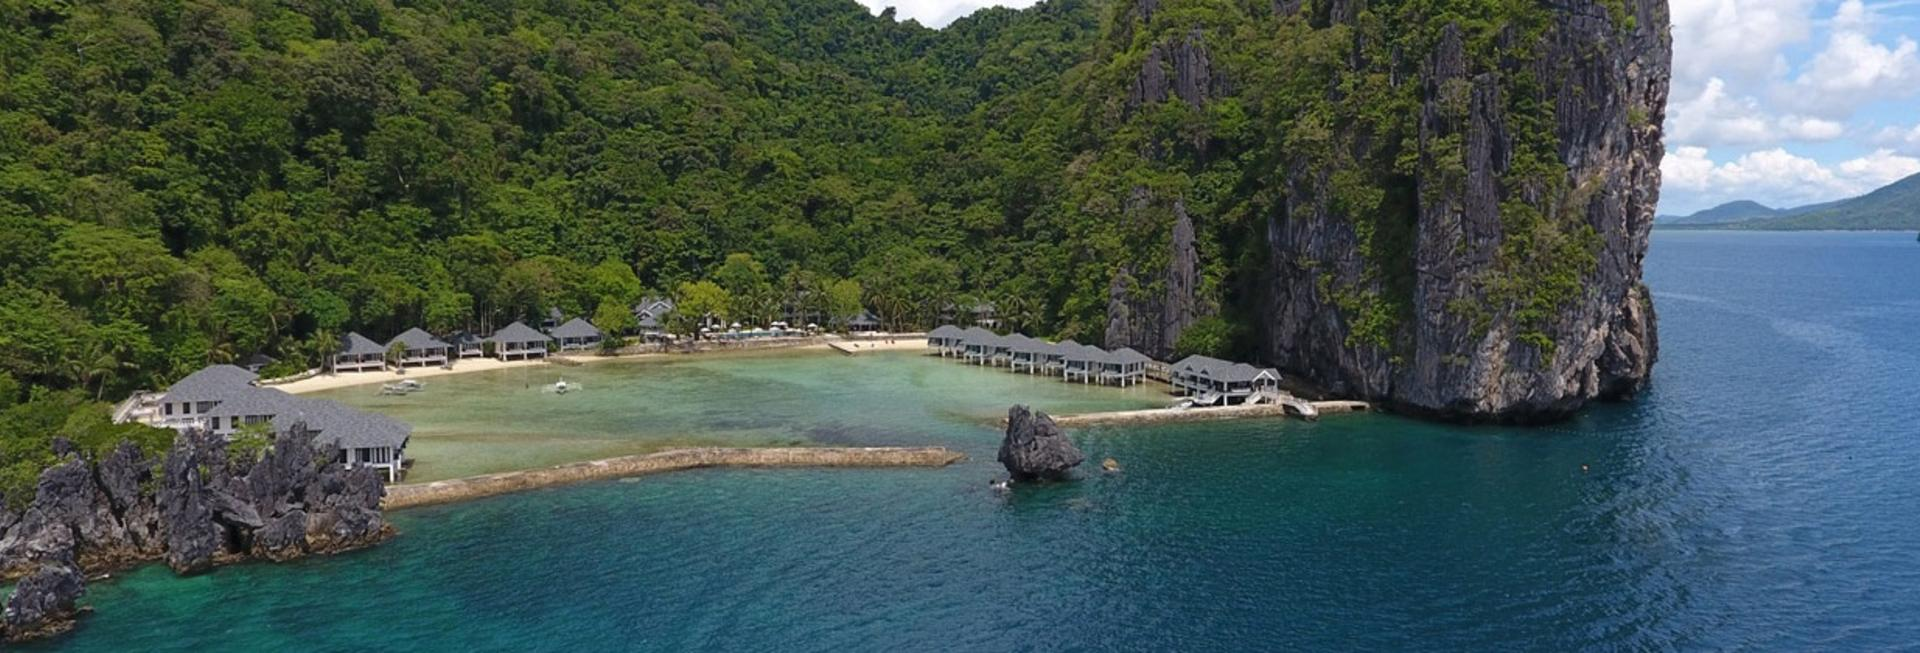 El Nido Resorts: Lagen Island, the Philippines